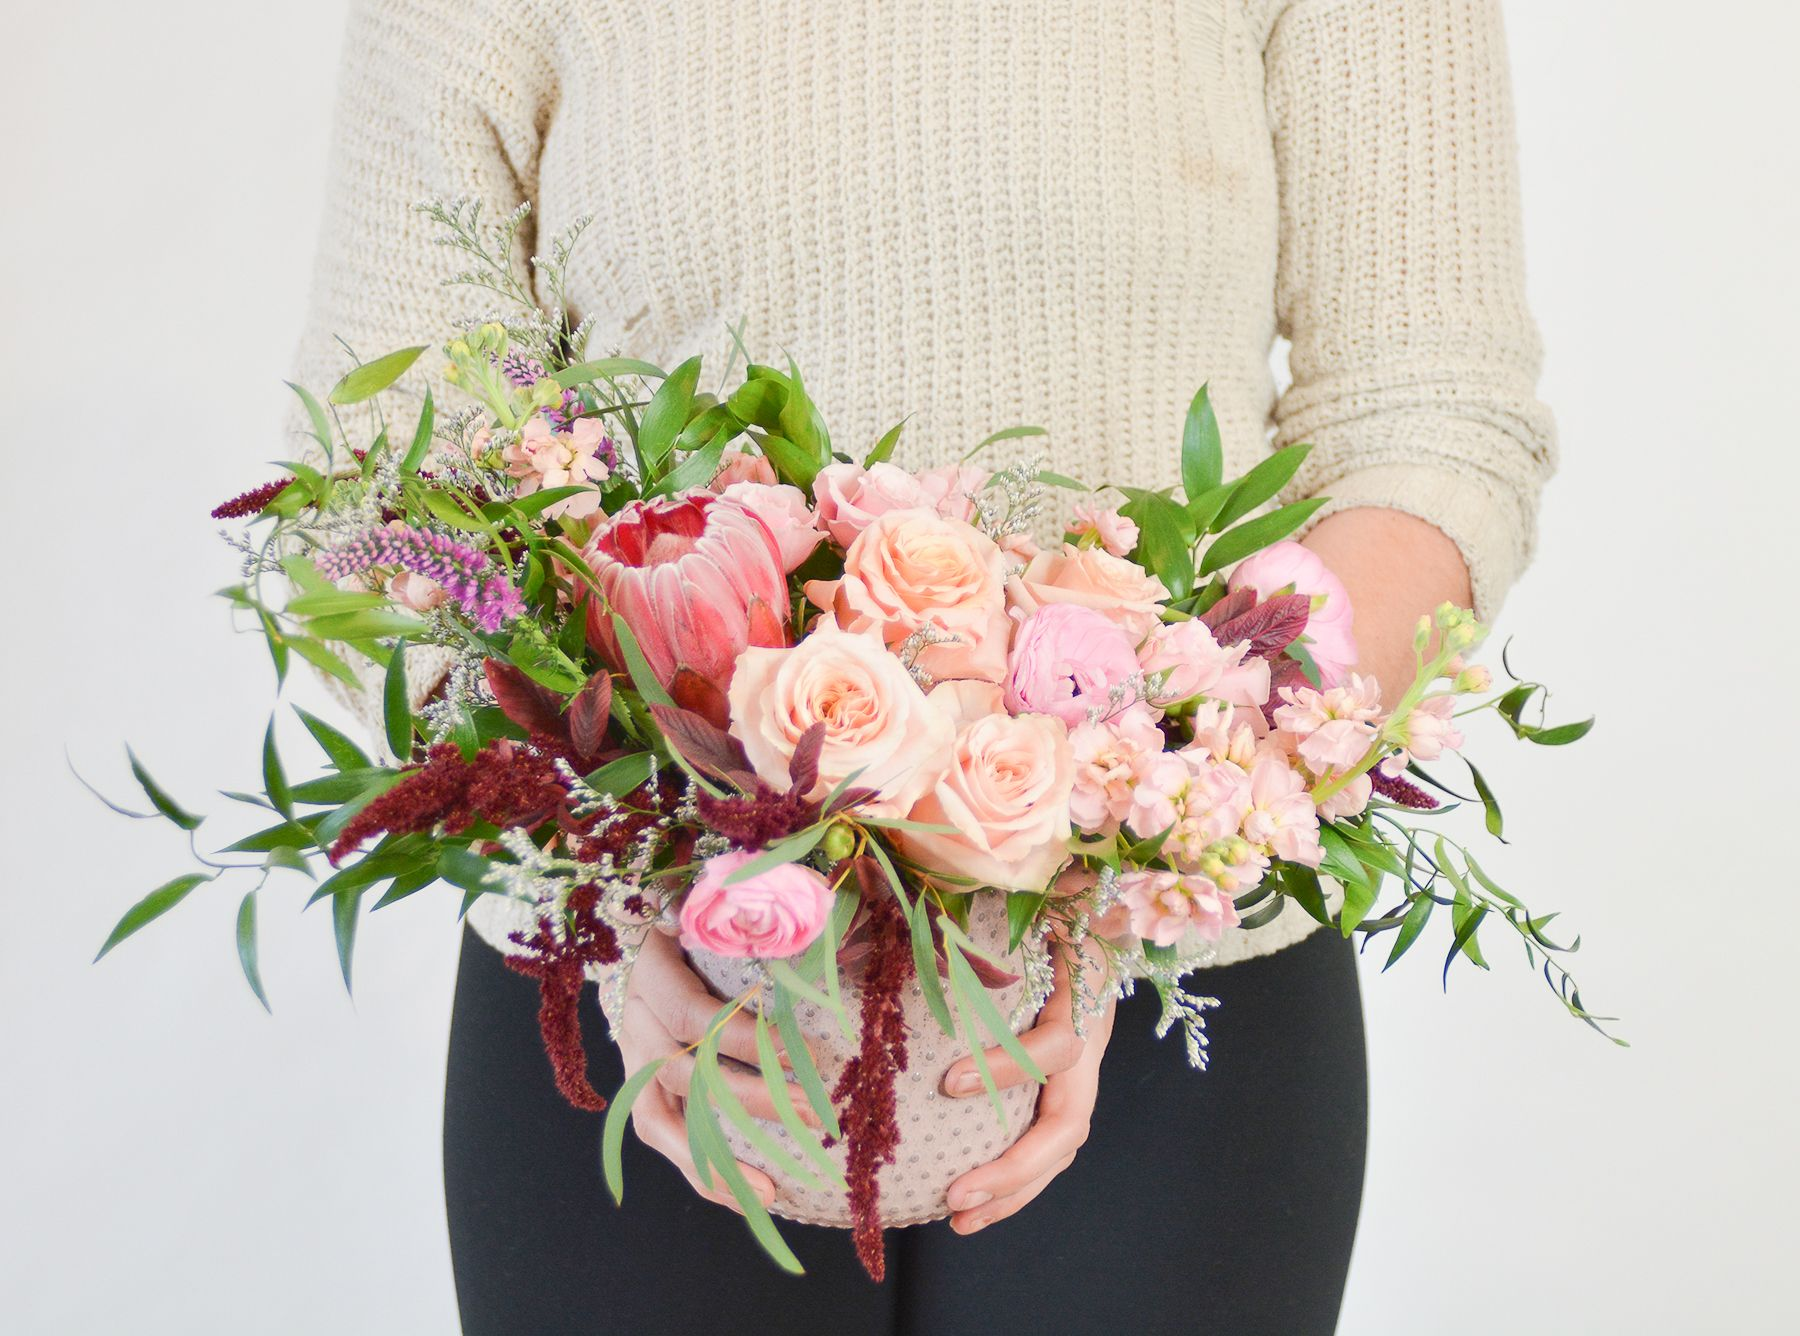 Swiped Right Arrangement Flower delivery, Garden gifts